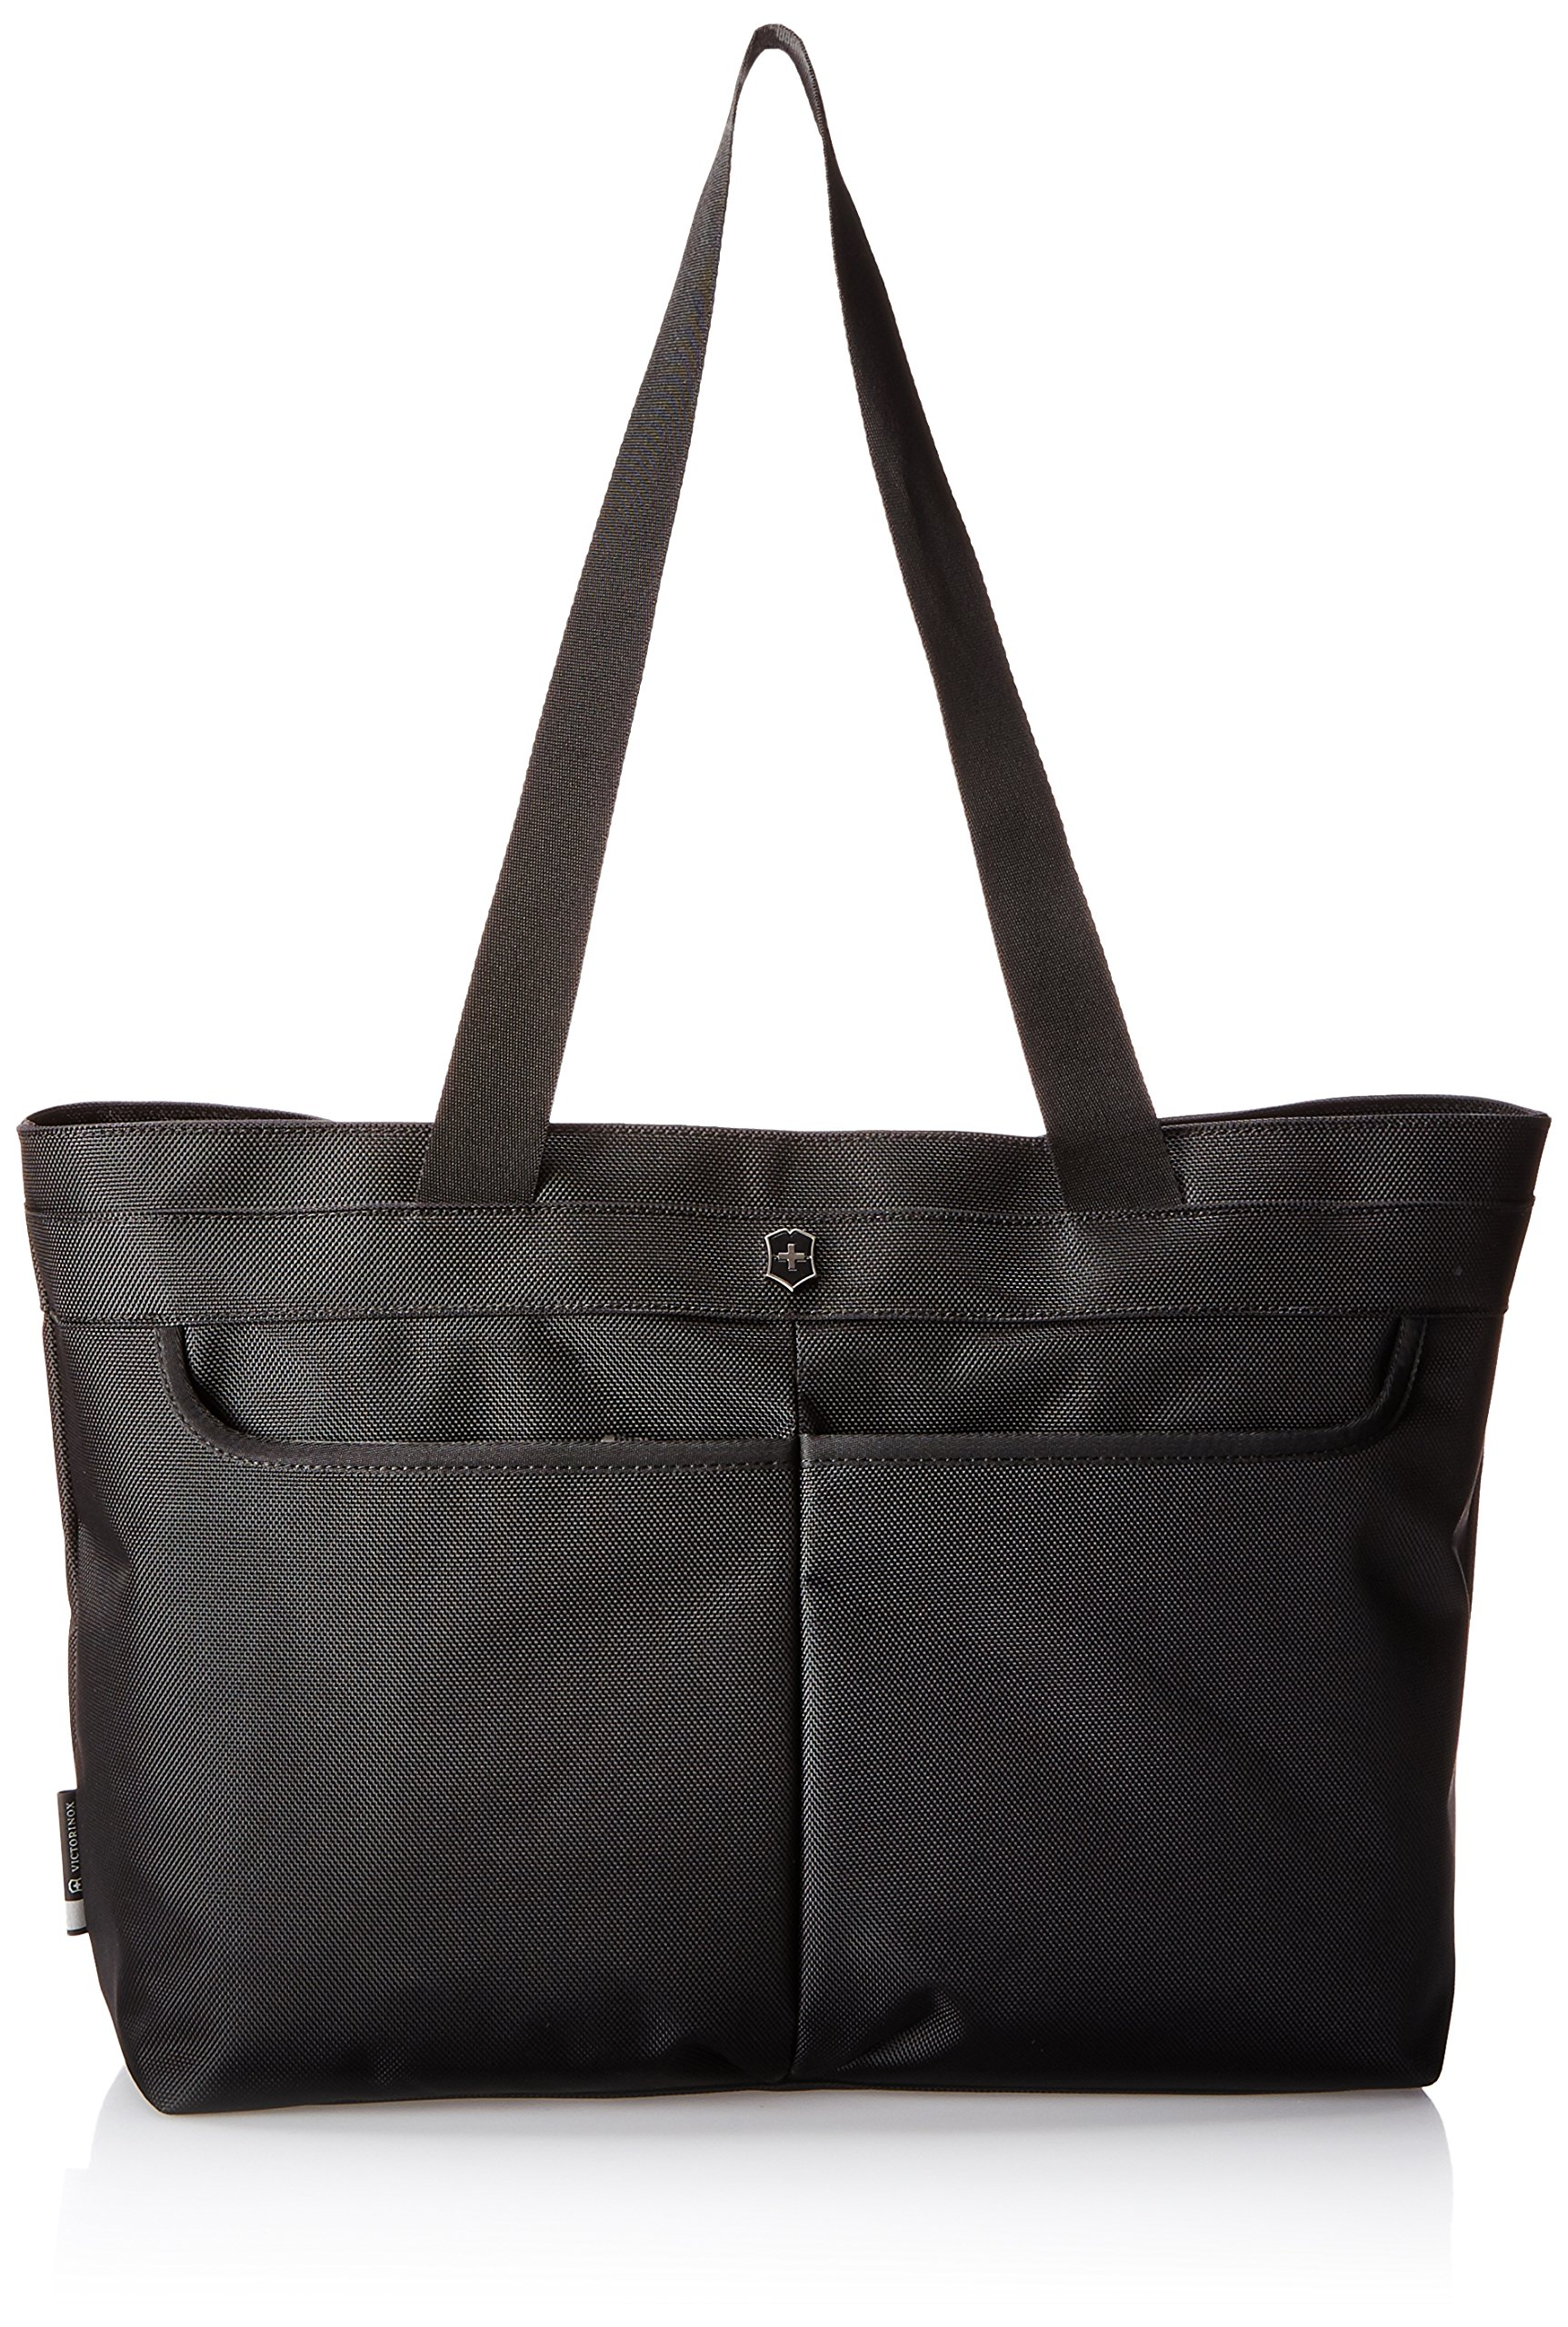 Victorinox Werks Traveler 5.0 WT Shopping Tote, Black, One Size